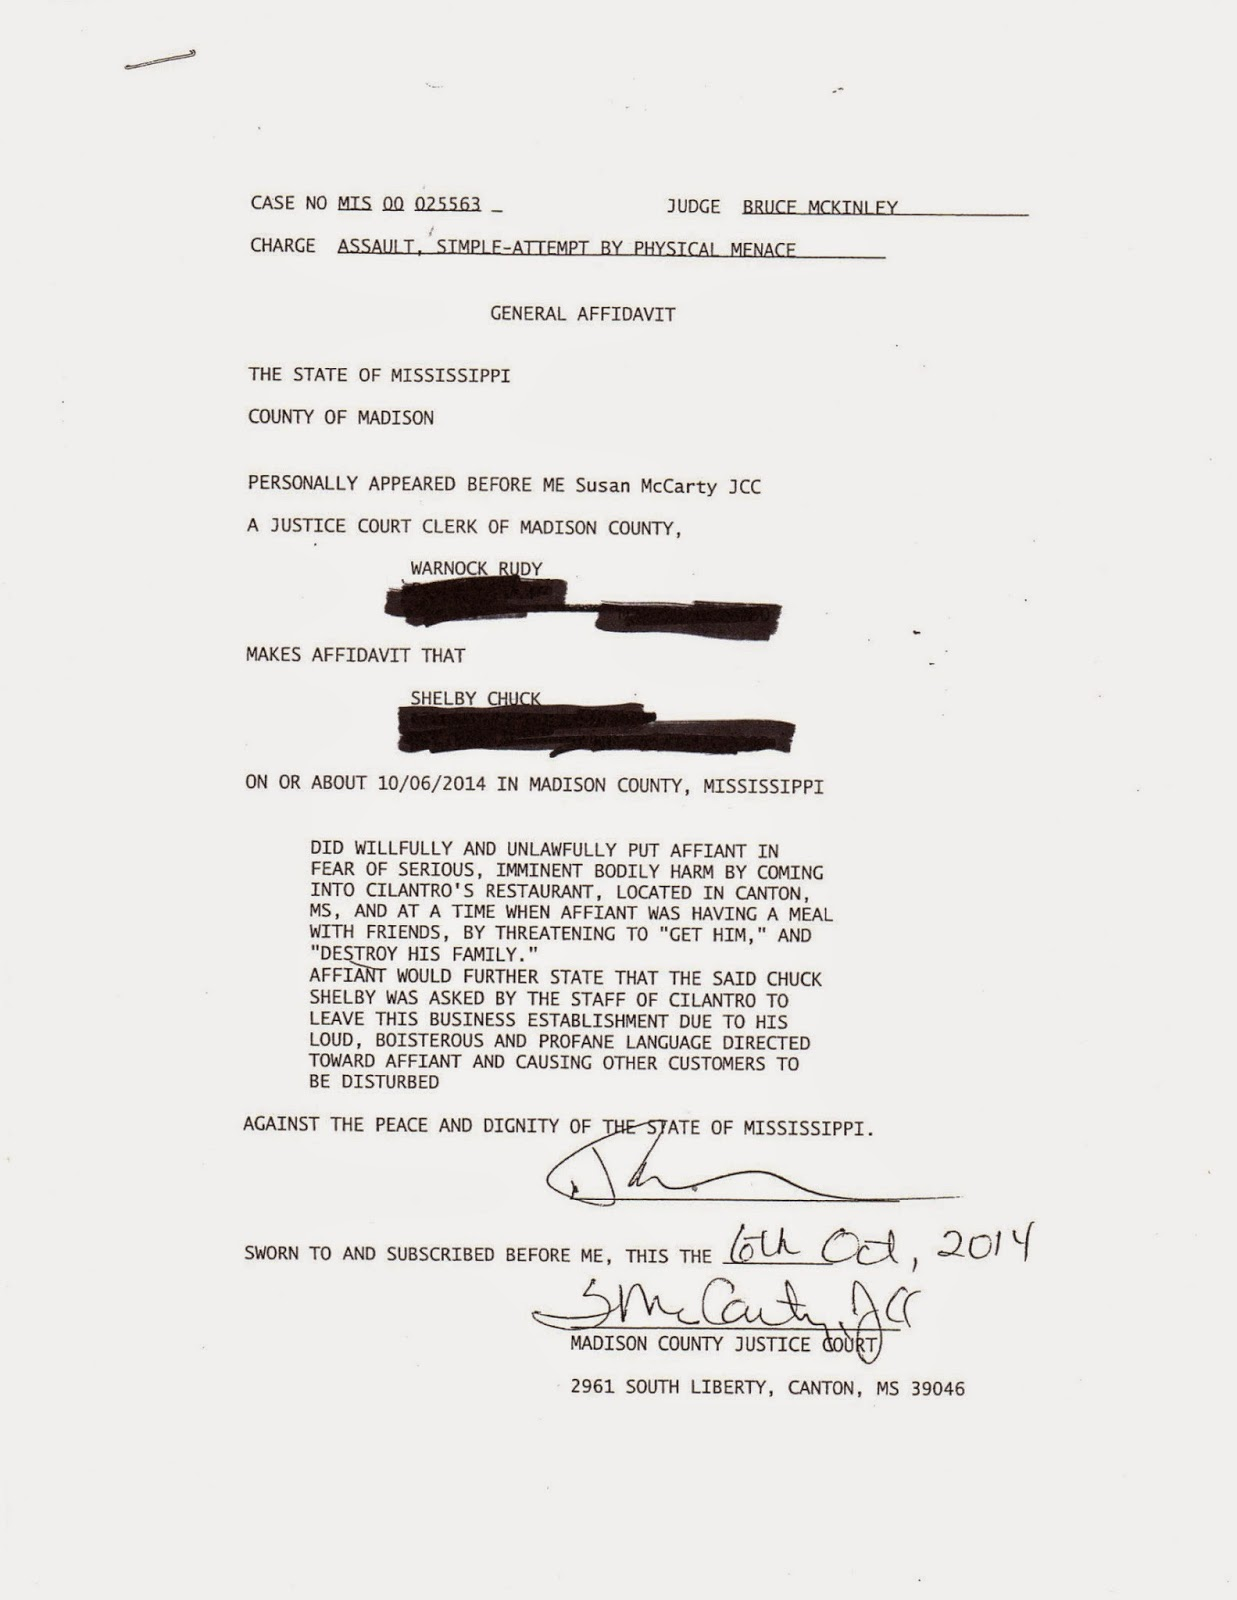 Mississippi madison county canton - Mr Warnock Filed Charges The Next Day Mr Shelby Was Arrested The Next Day And Posted Bond He Is 72 Years Old The Affidavit Is Posted Below